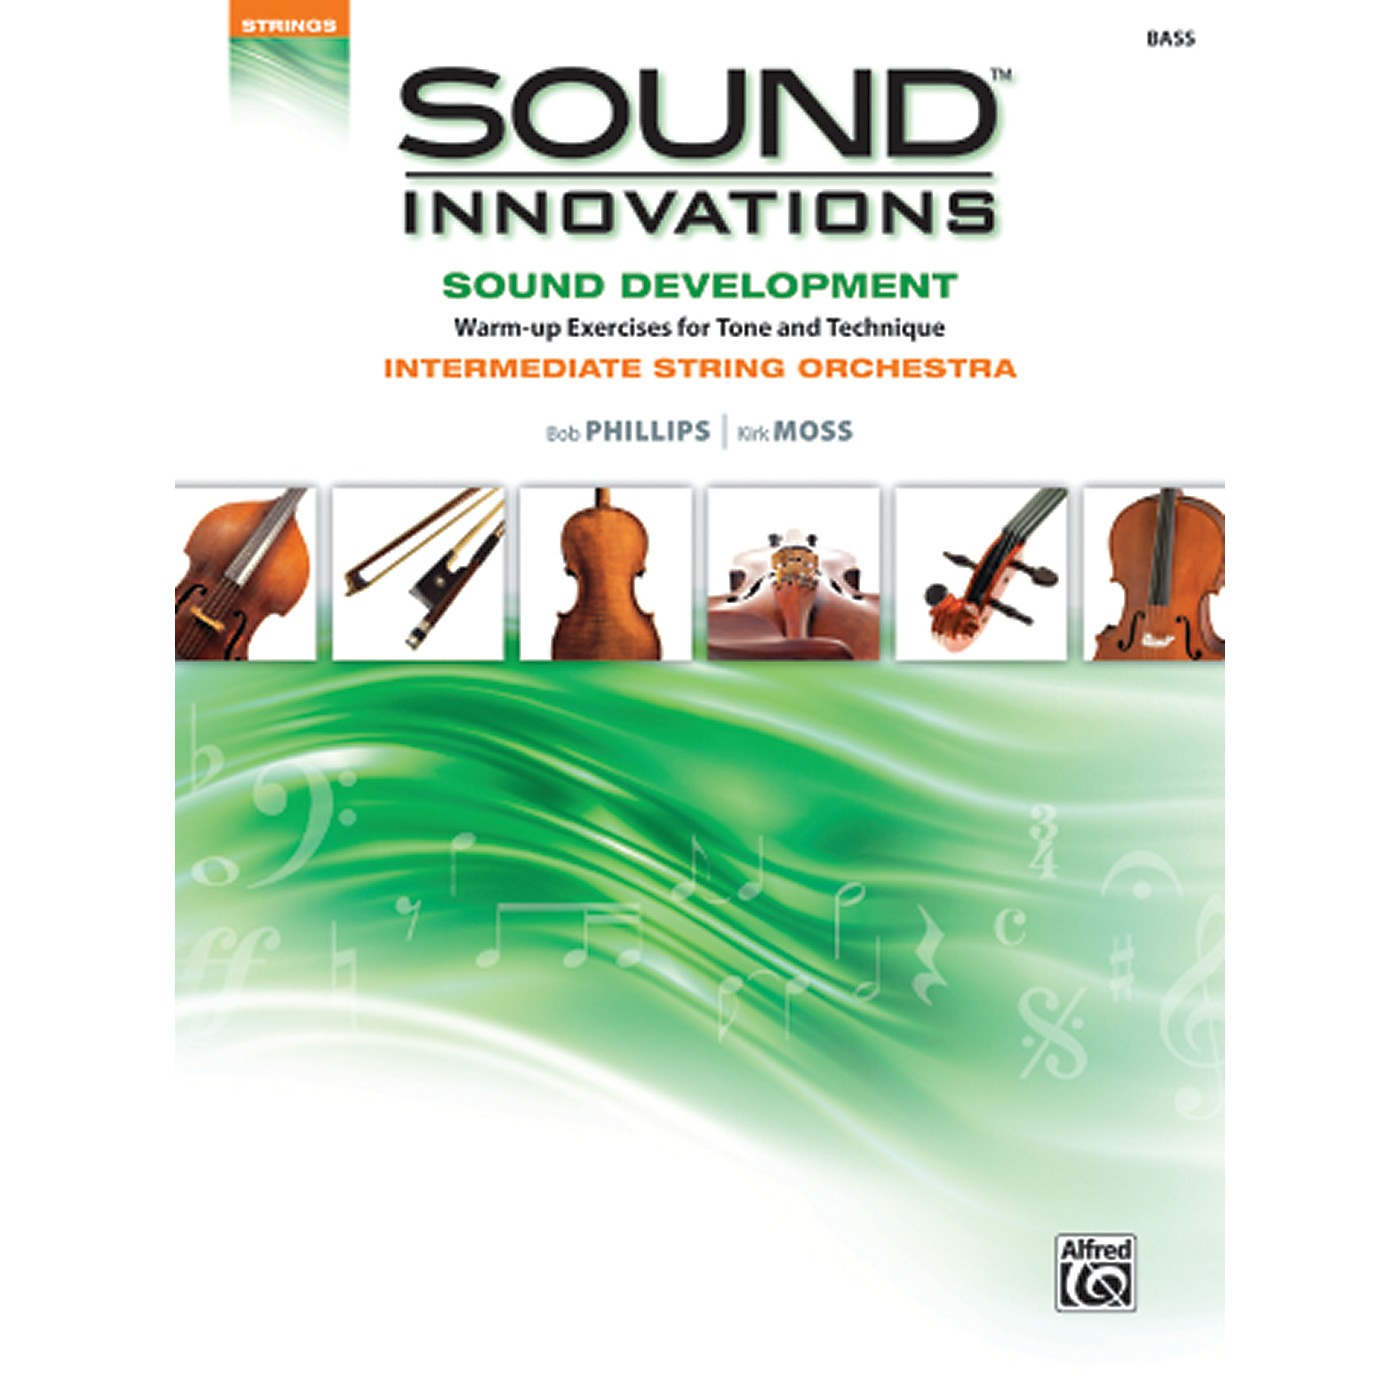 Alfred Sound Innovations String Orchestra Sound Development Bass Book thumbnail